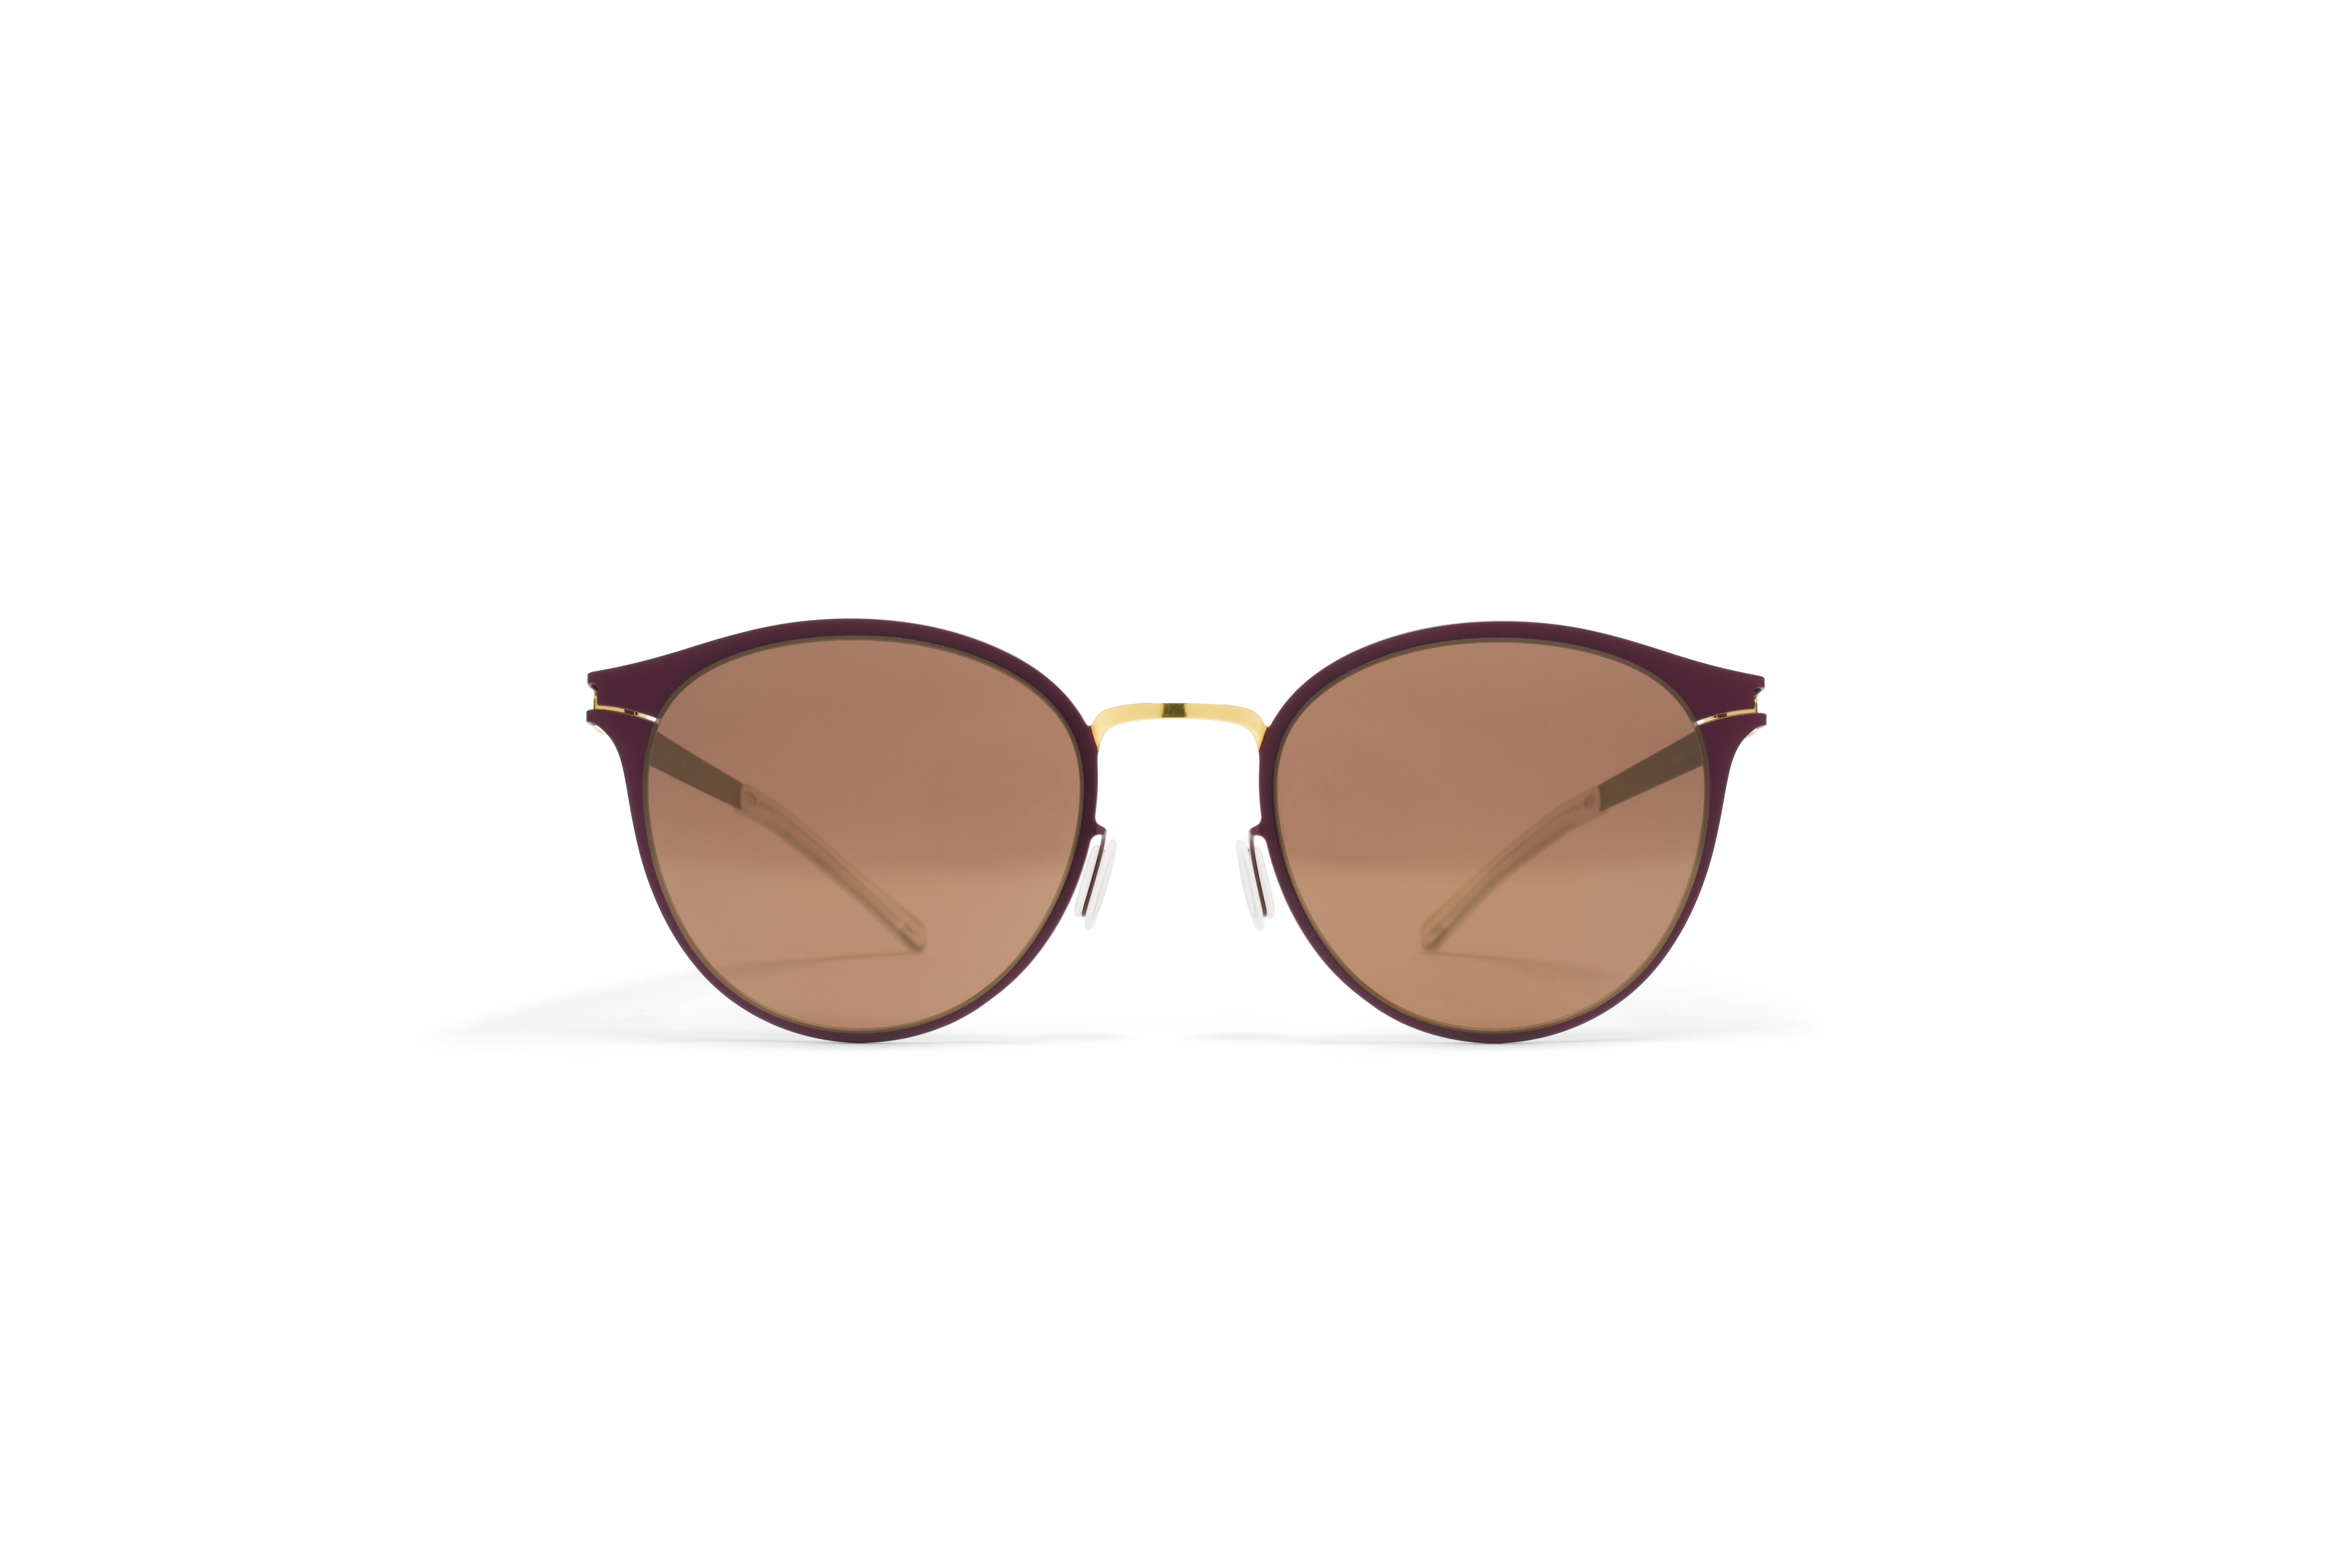 MYKITA Decades Sun Celeste Gold Burgundy Brilliant562b45b2e413a